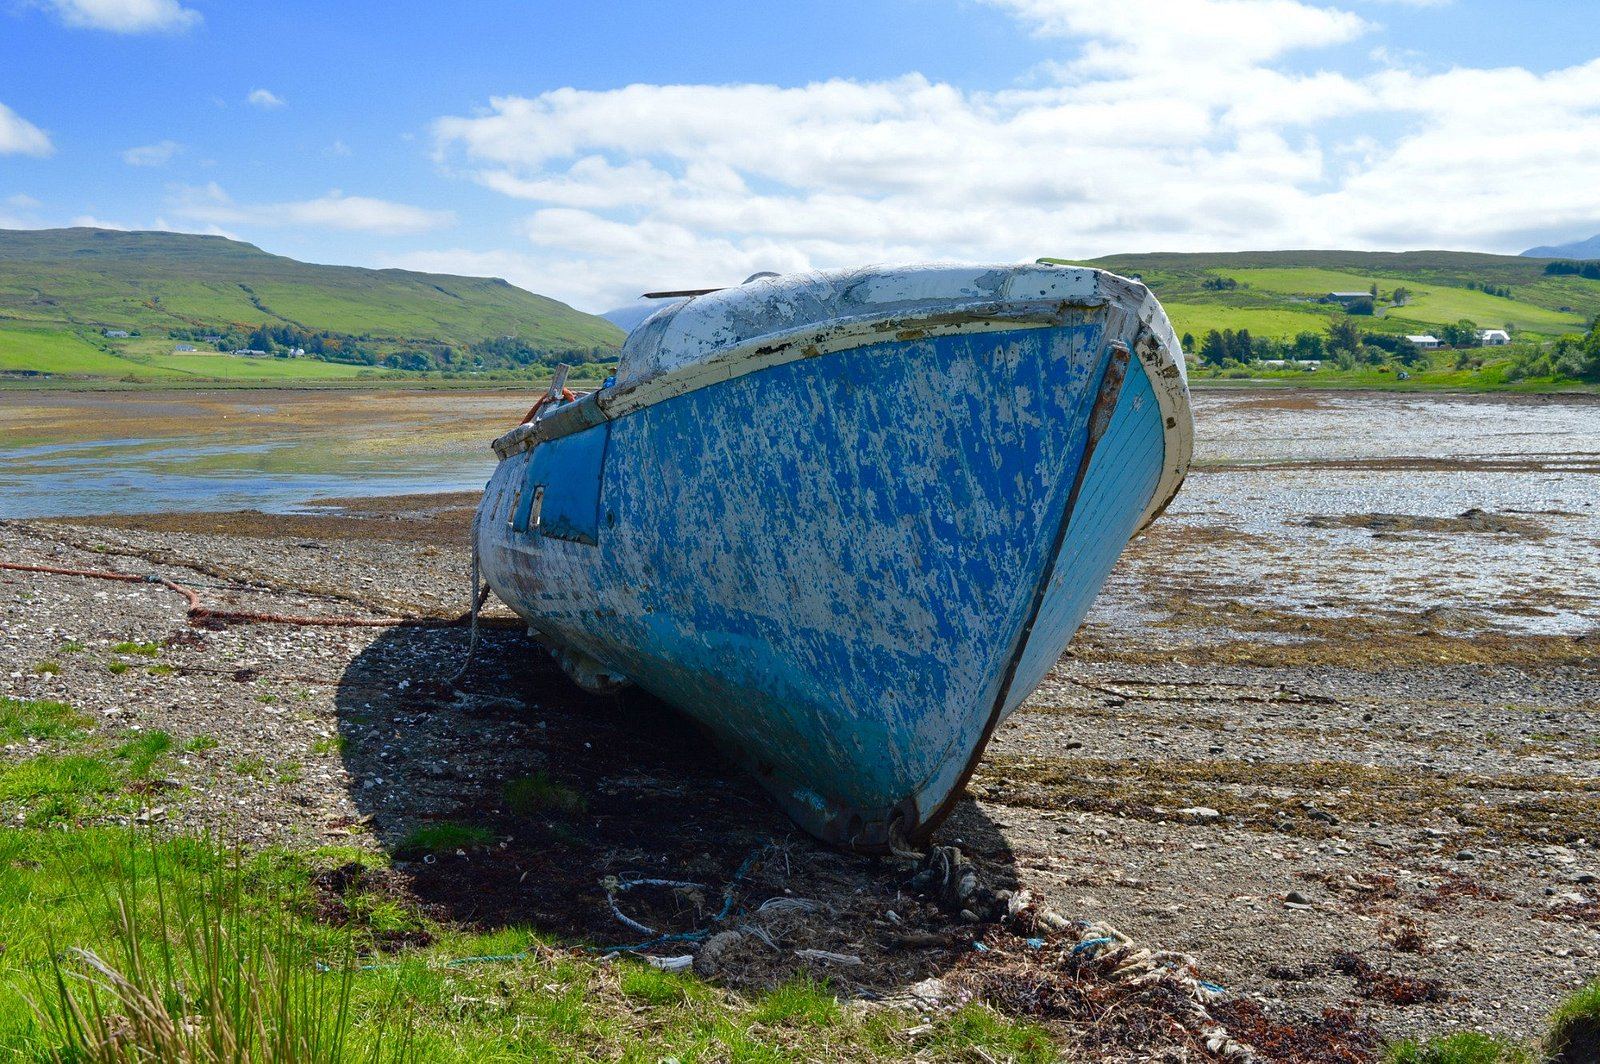 Old Lifeboat on Loch Harport at Carbost, Isle of Skye